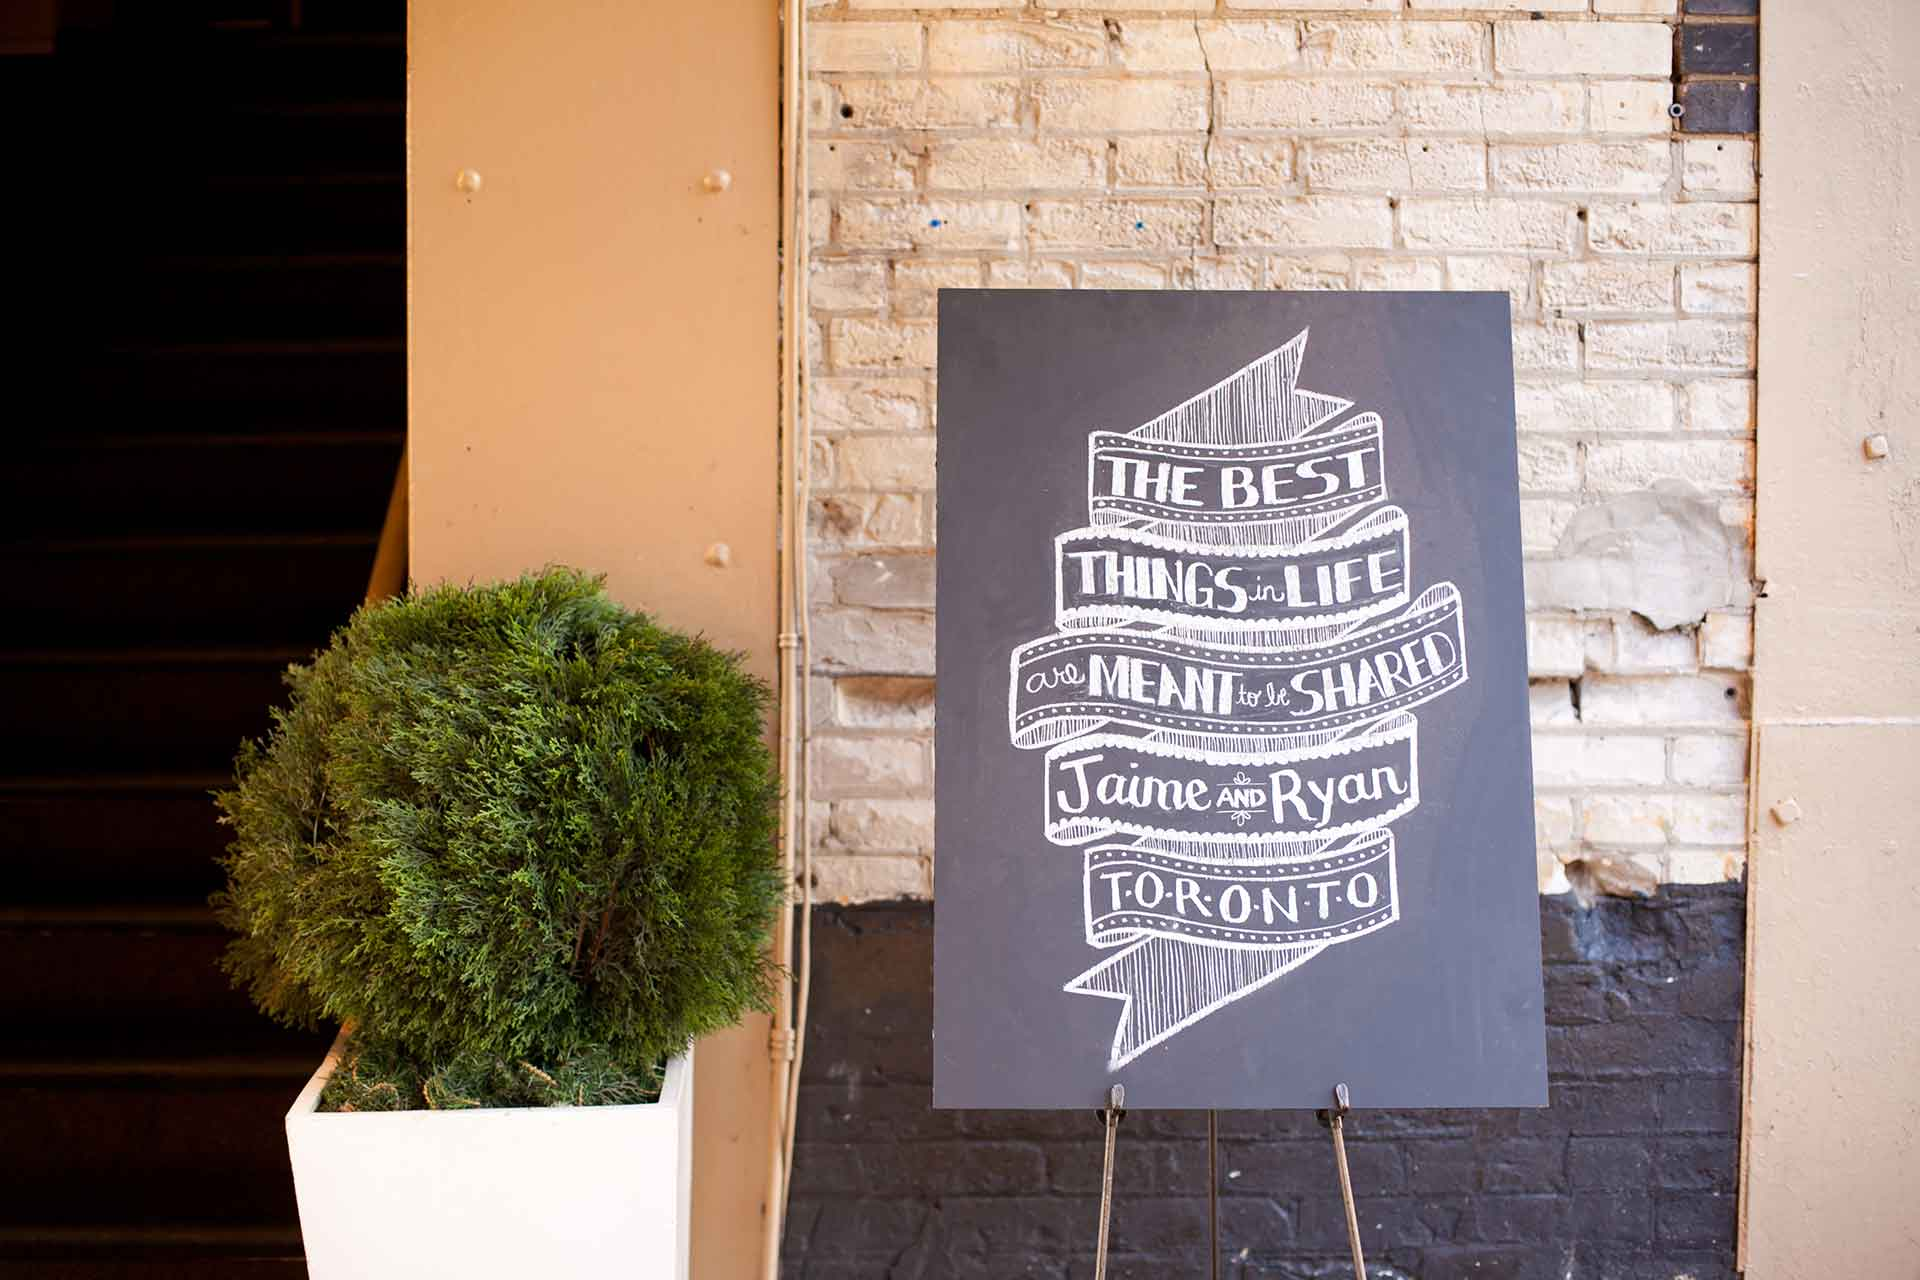 Wedding Venues Downtown Toronto Best Chalkboard Sign Design